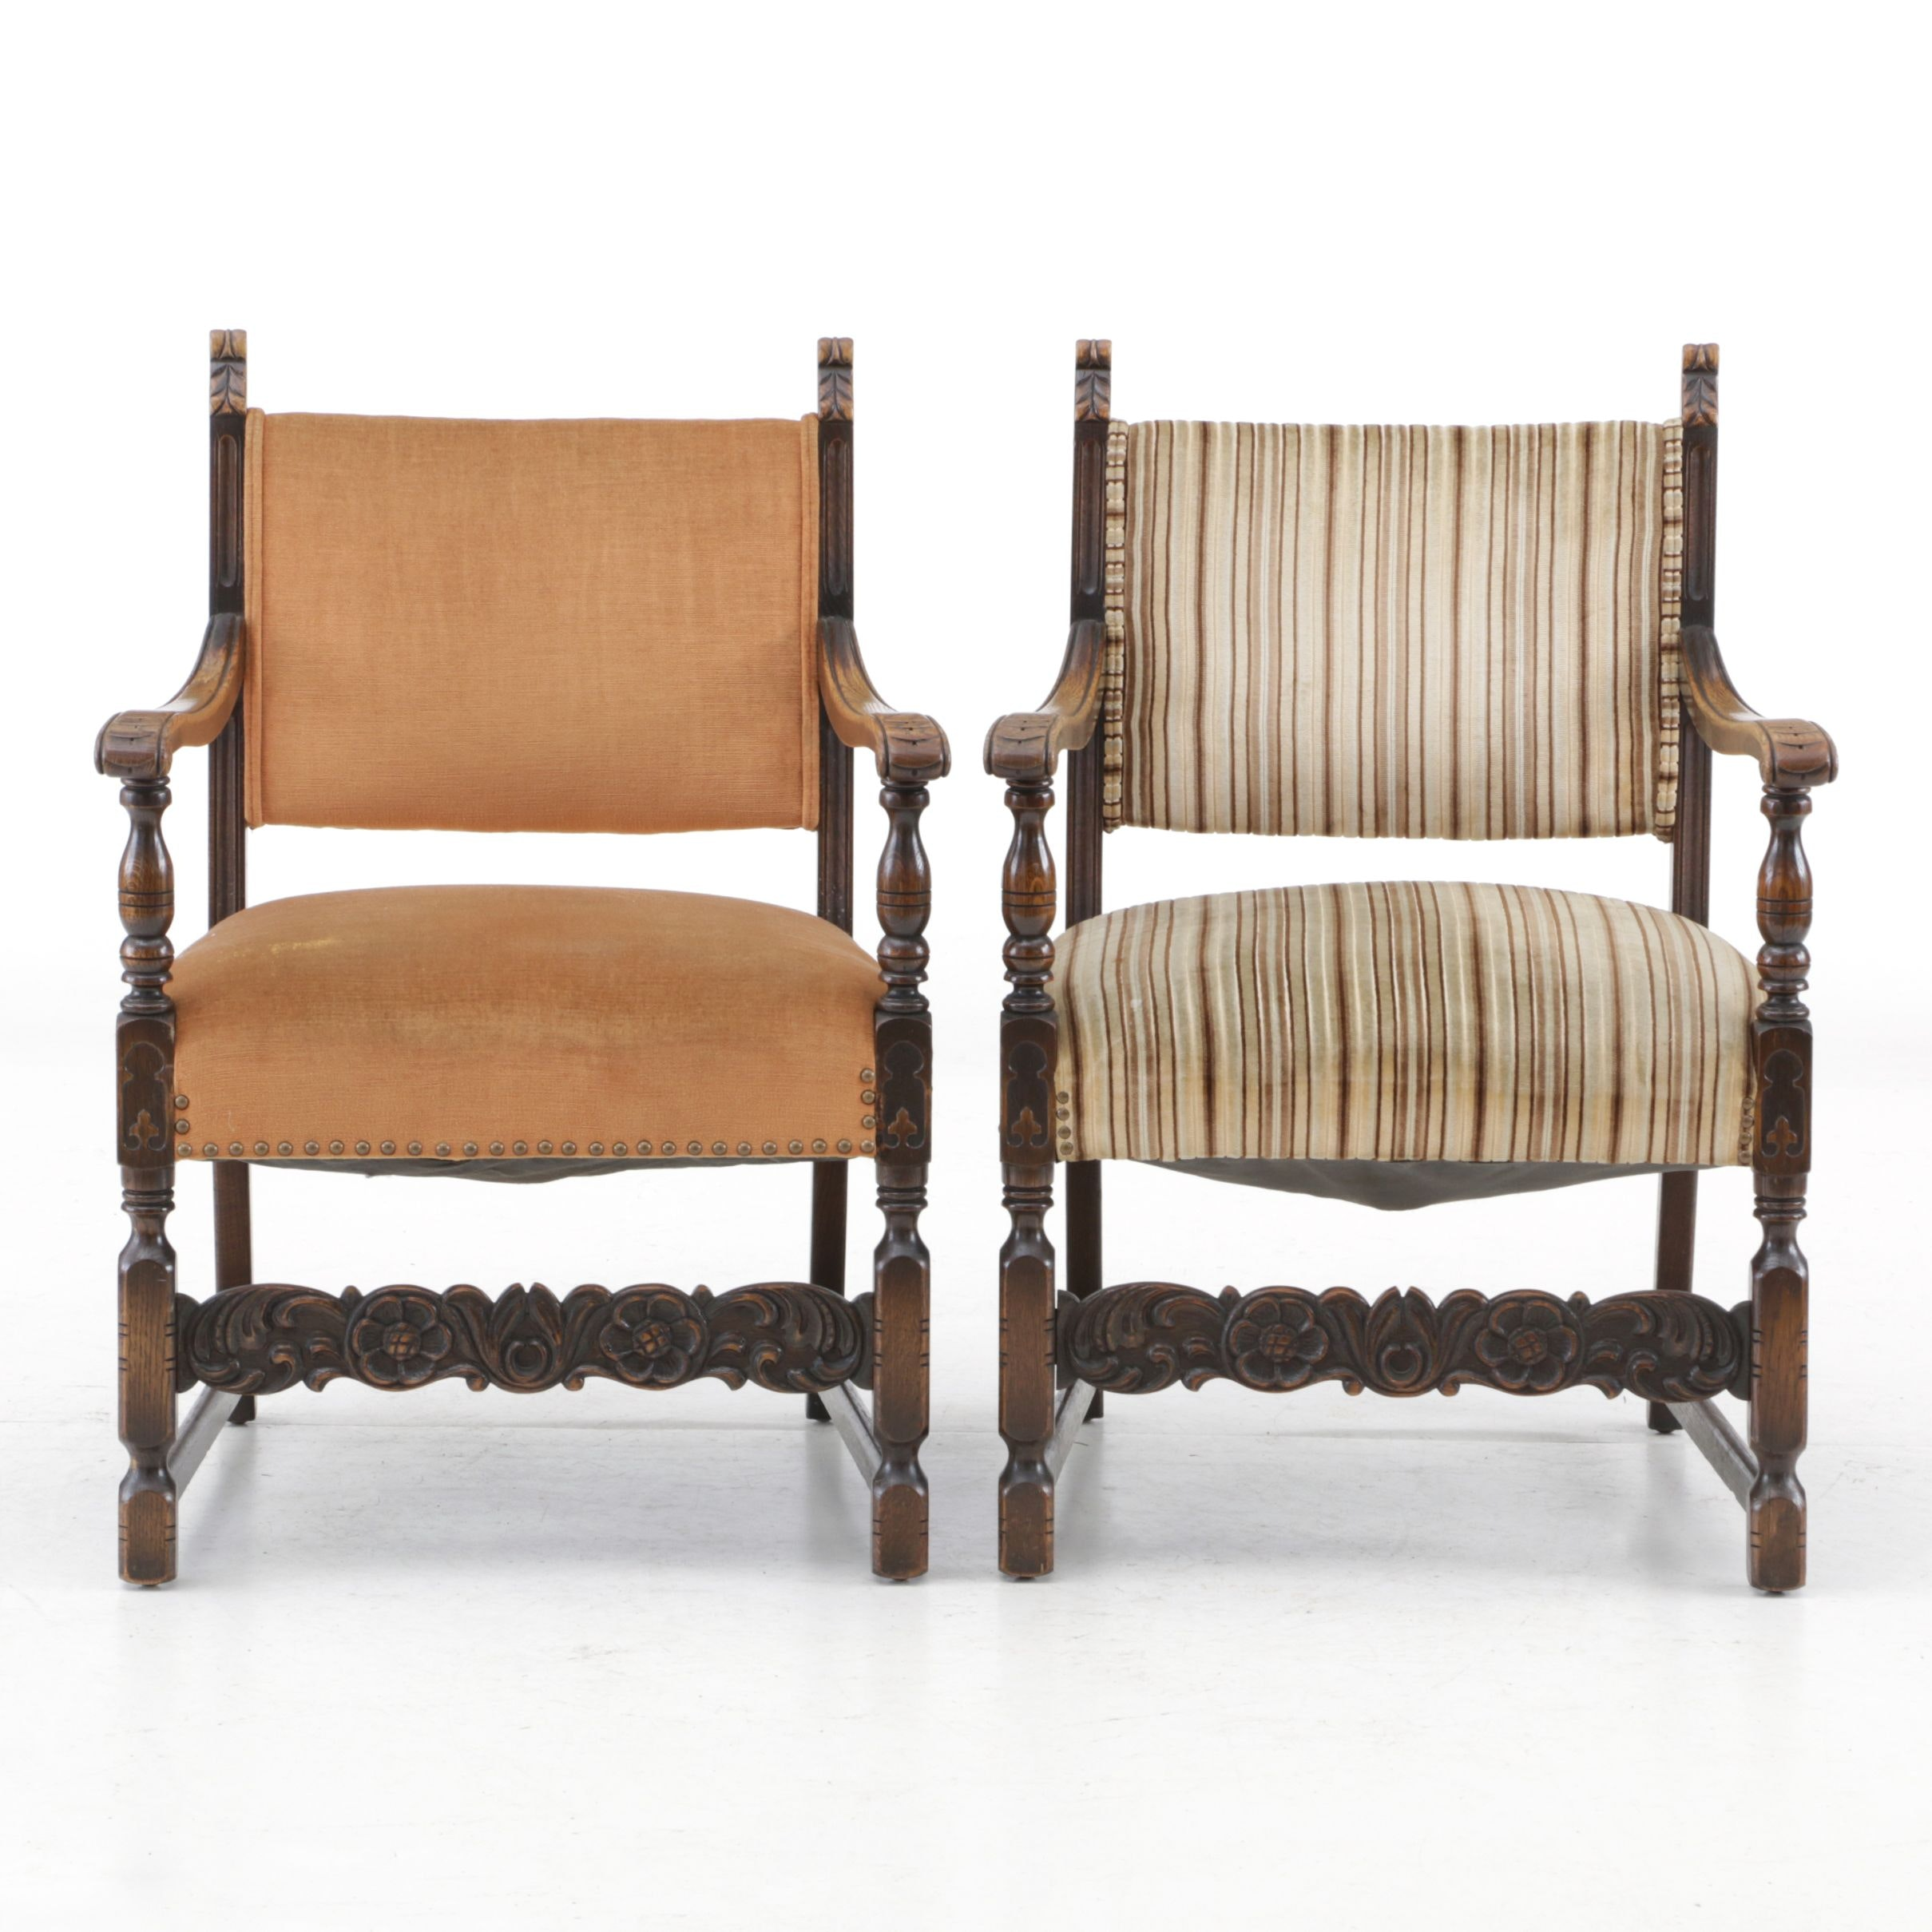 Jacobean Revival Upholstered Oak Armchairs, Early 20th Century